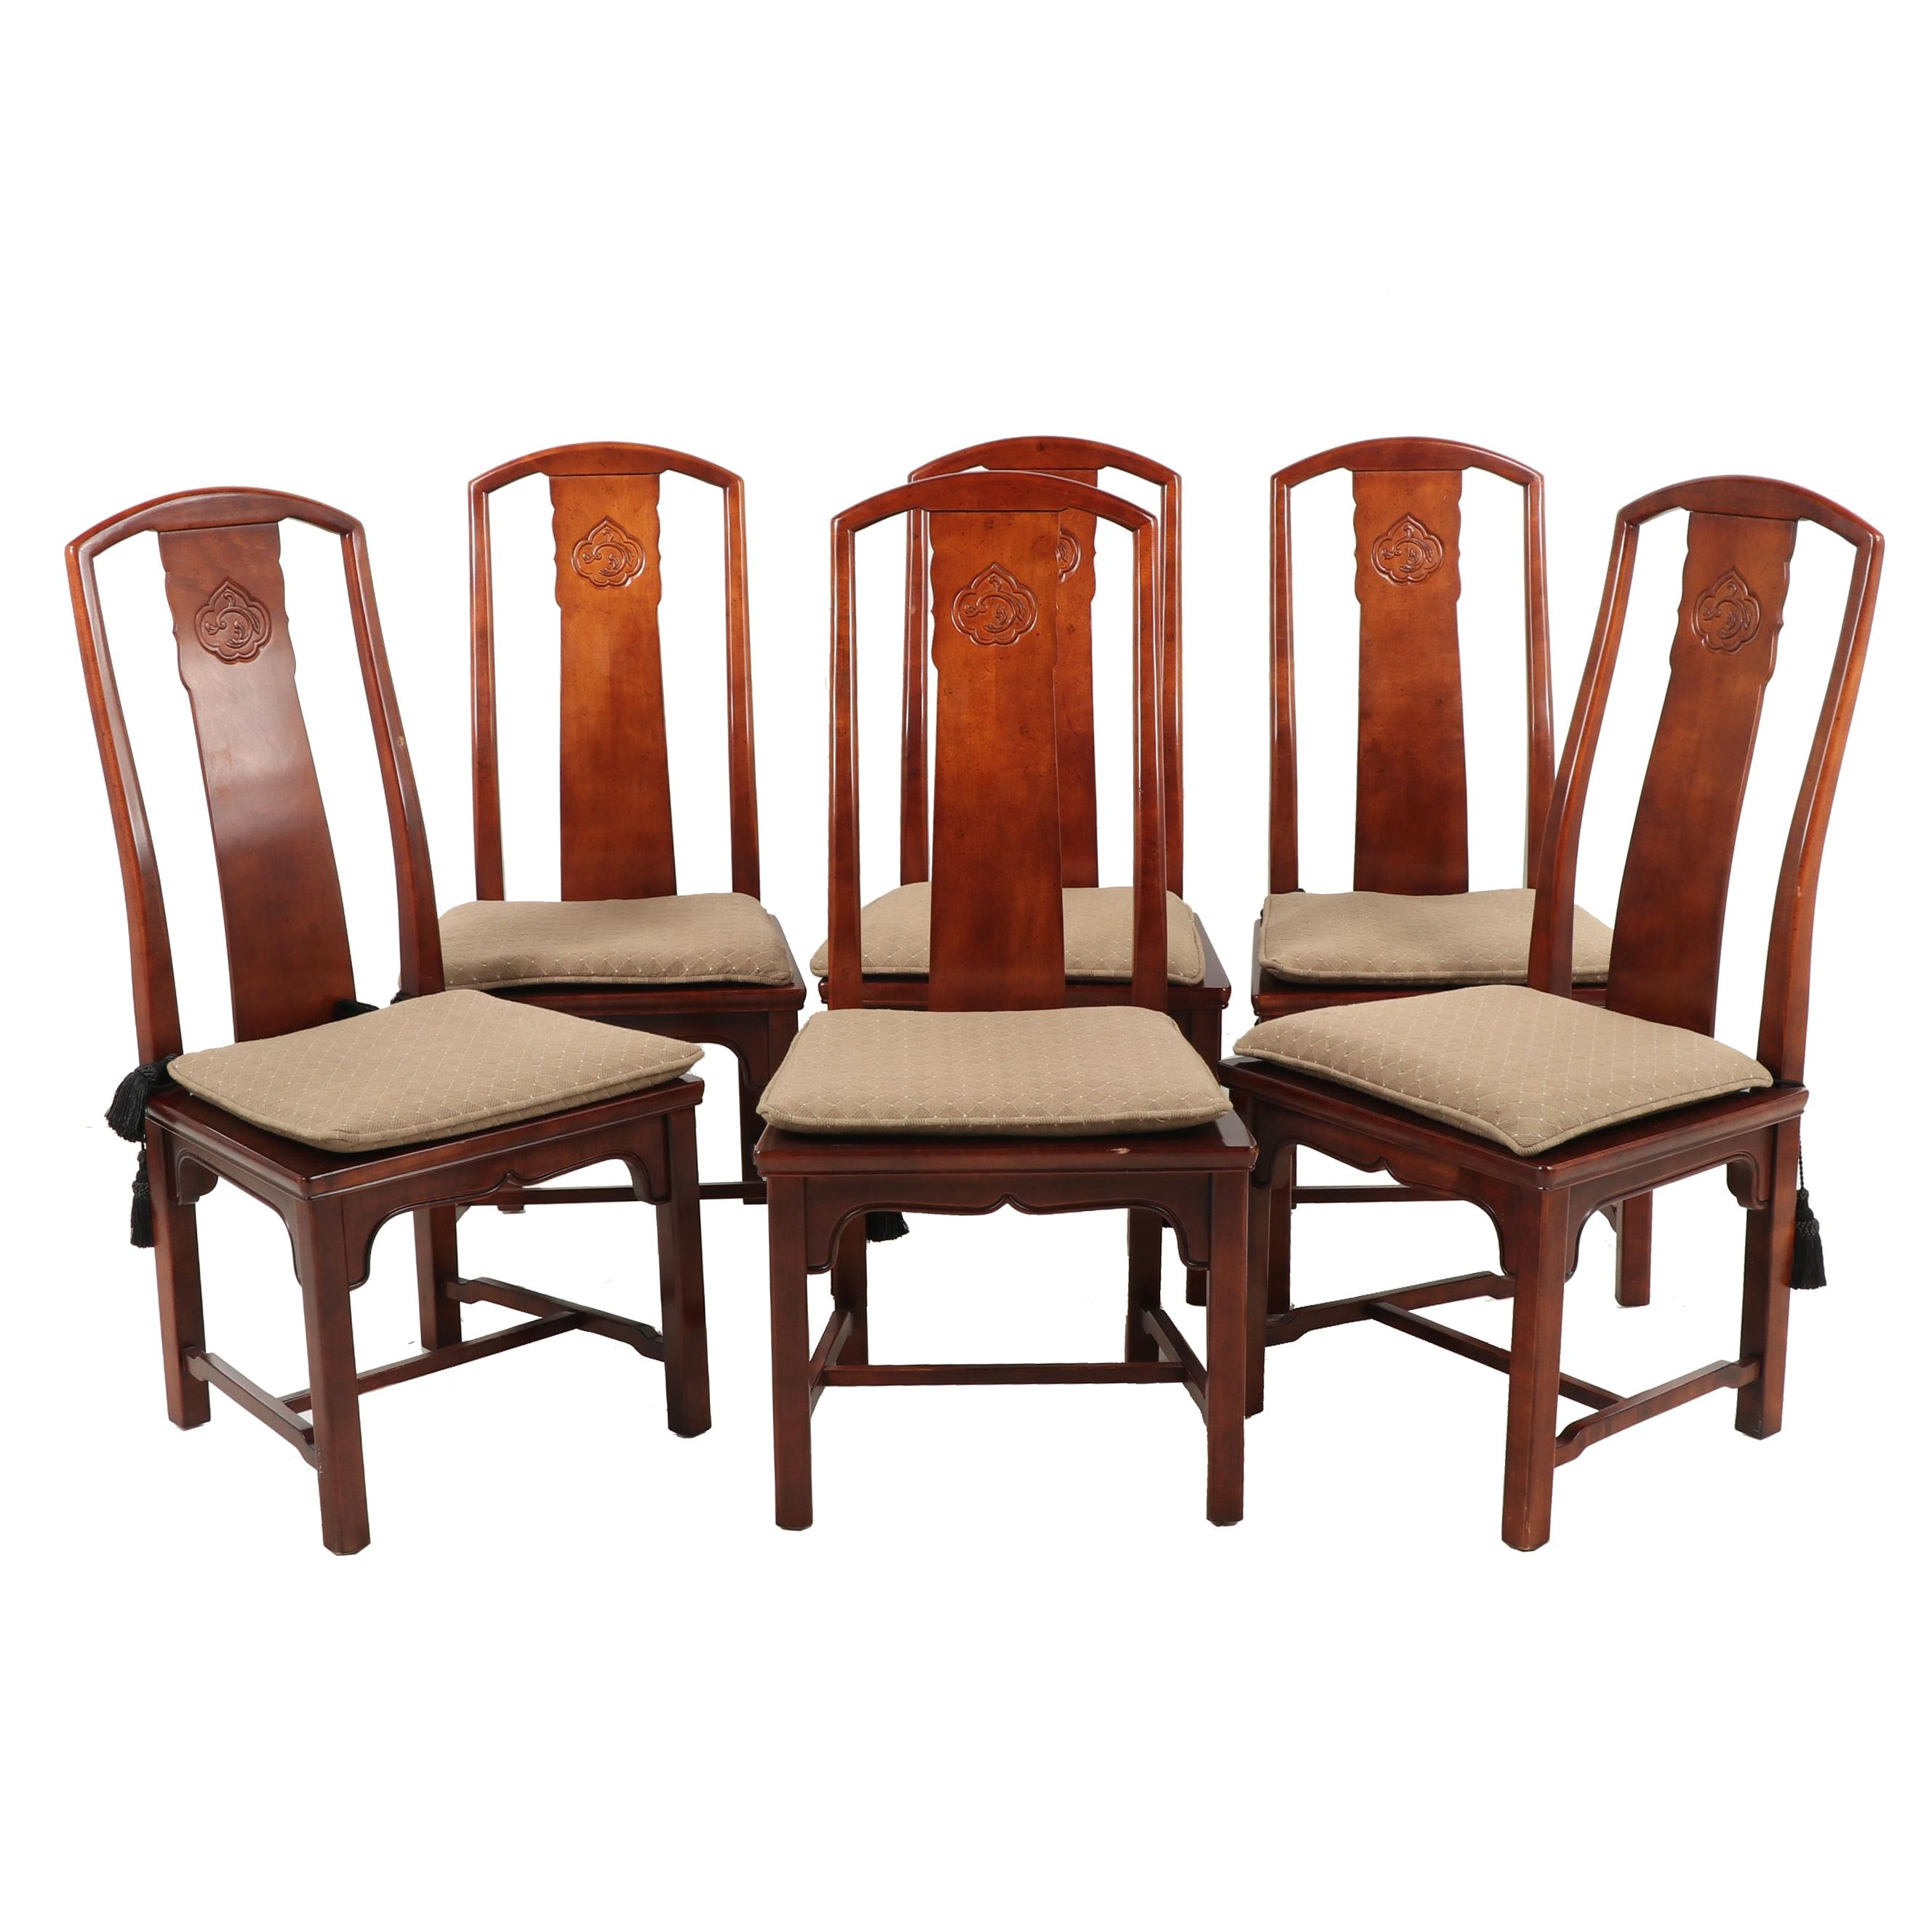 Chinese Inspired Henredon Dining Chairs with Cane Seats, Contemporary